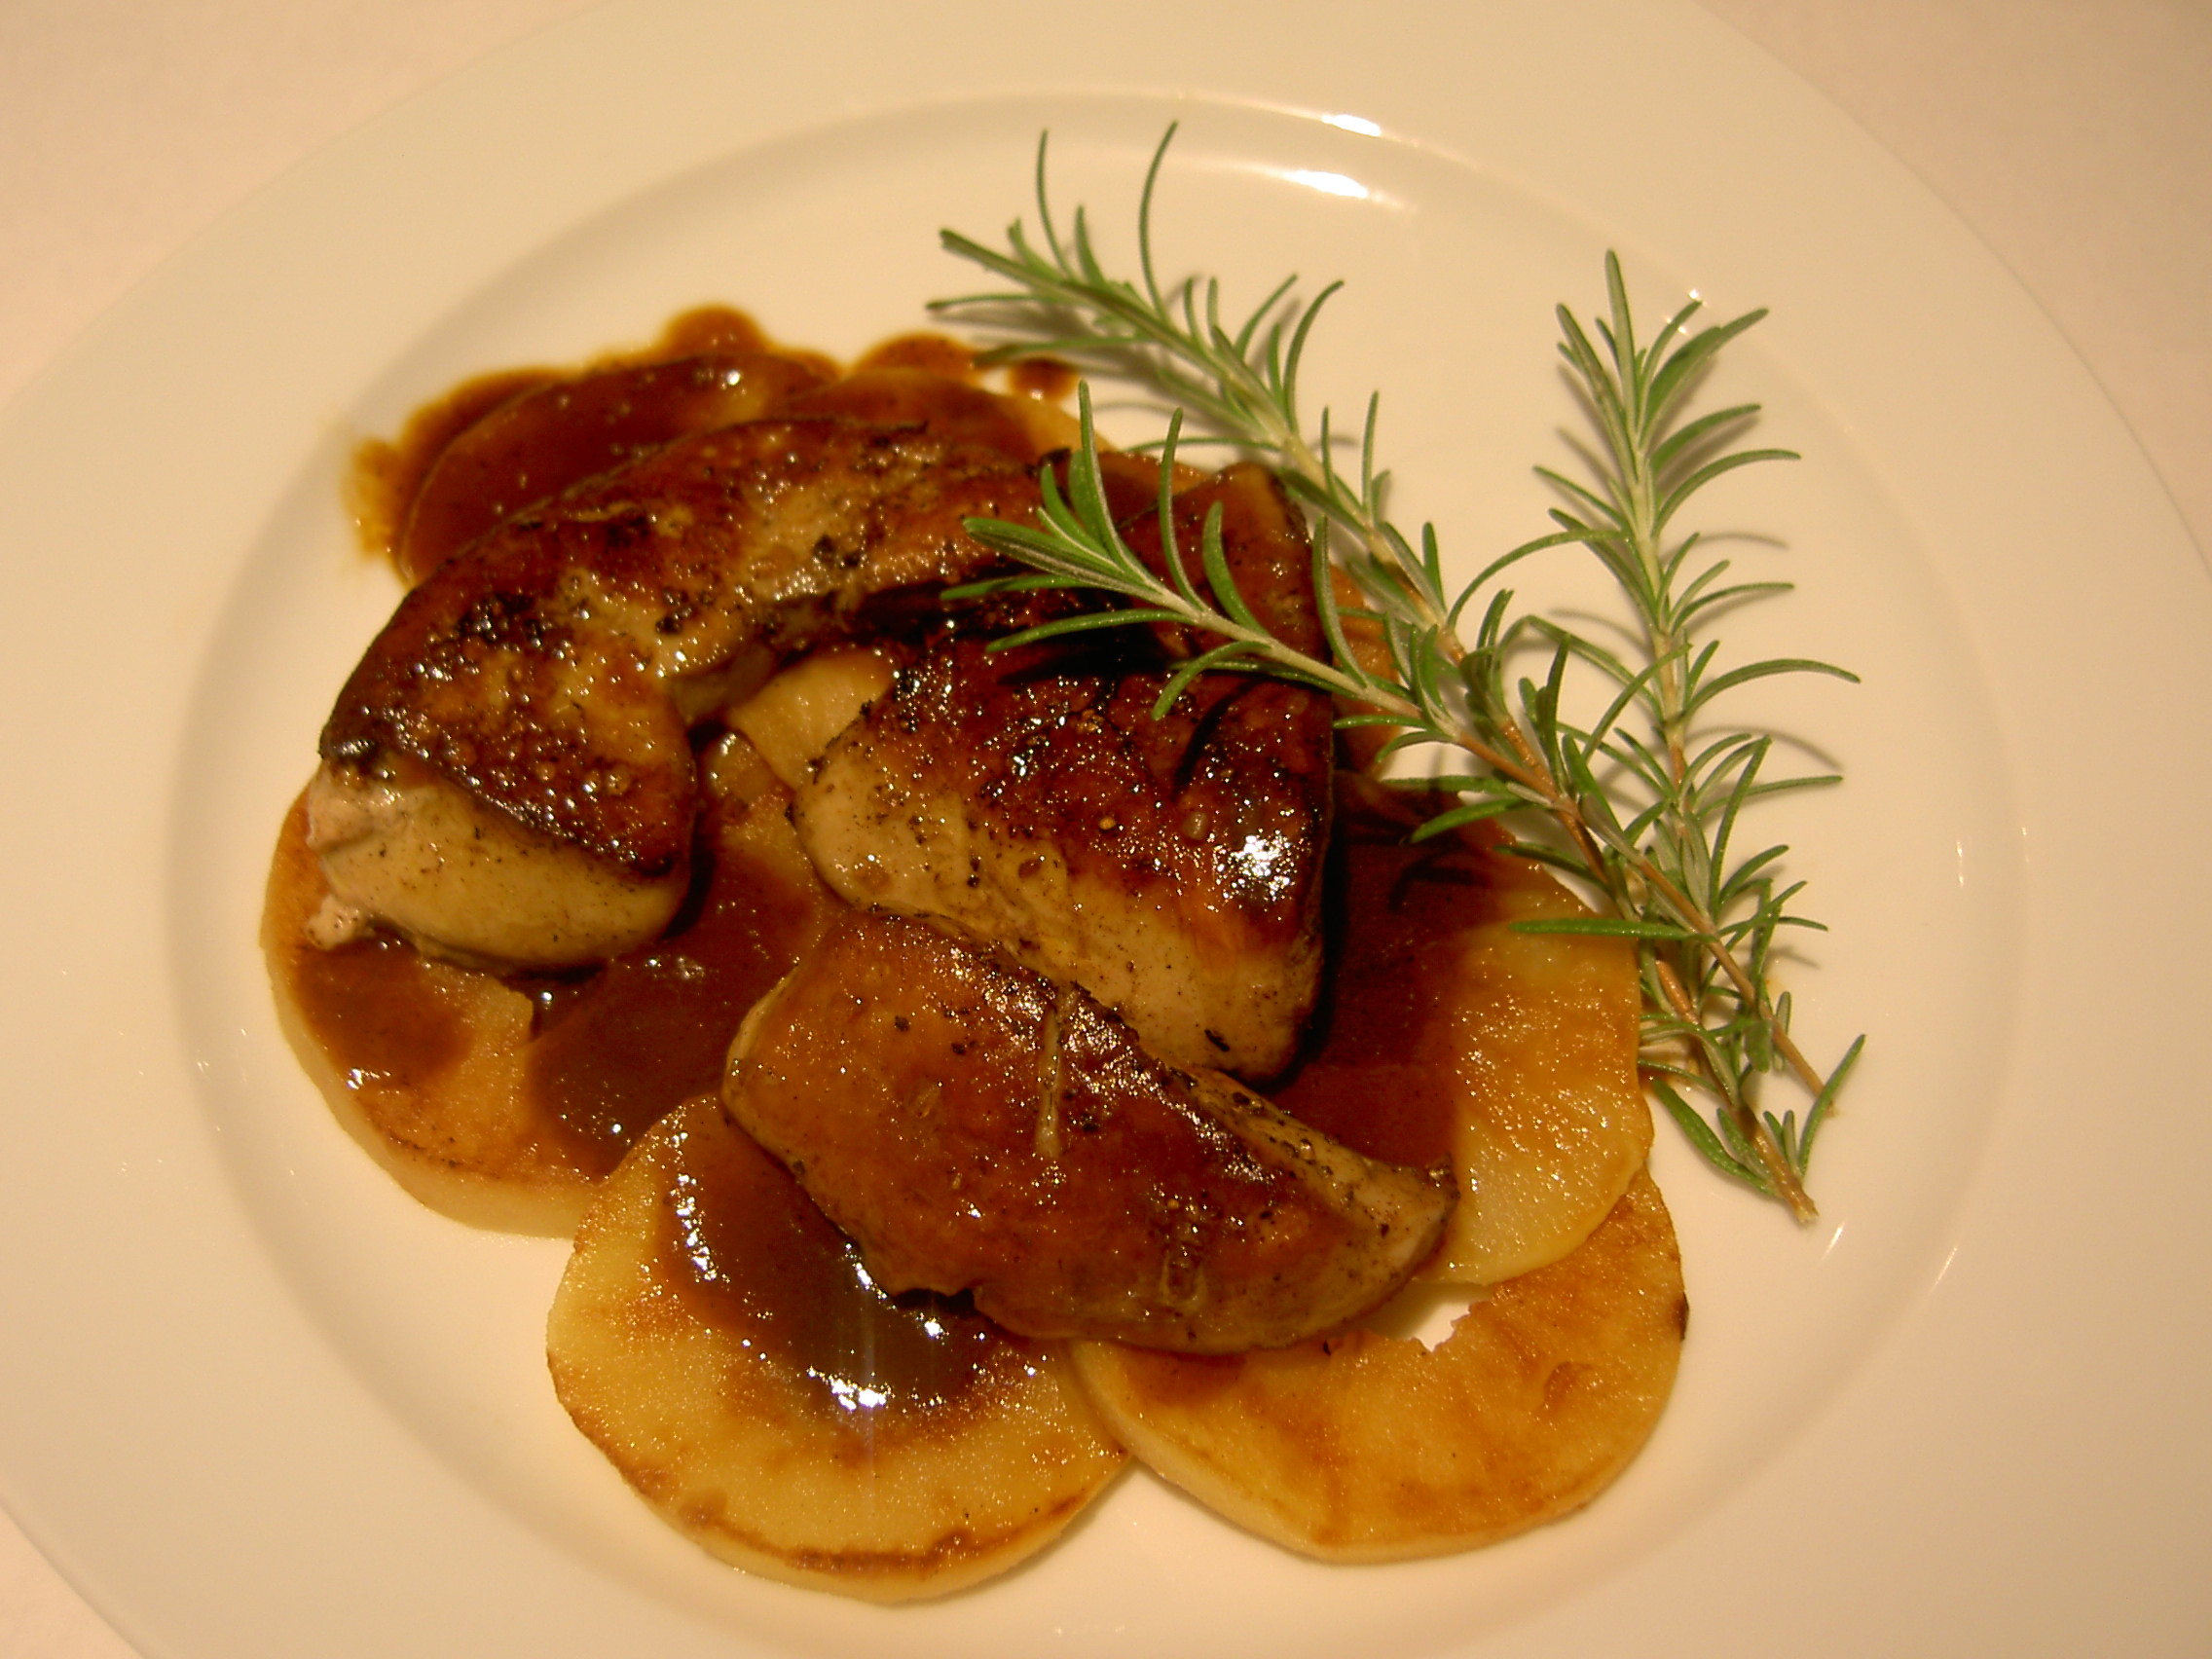 ... foie gras sautéed duck foie gras buttery seared foie gras seared foie